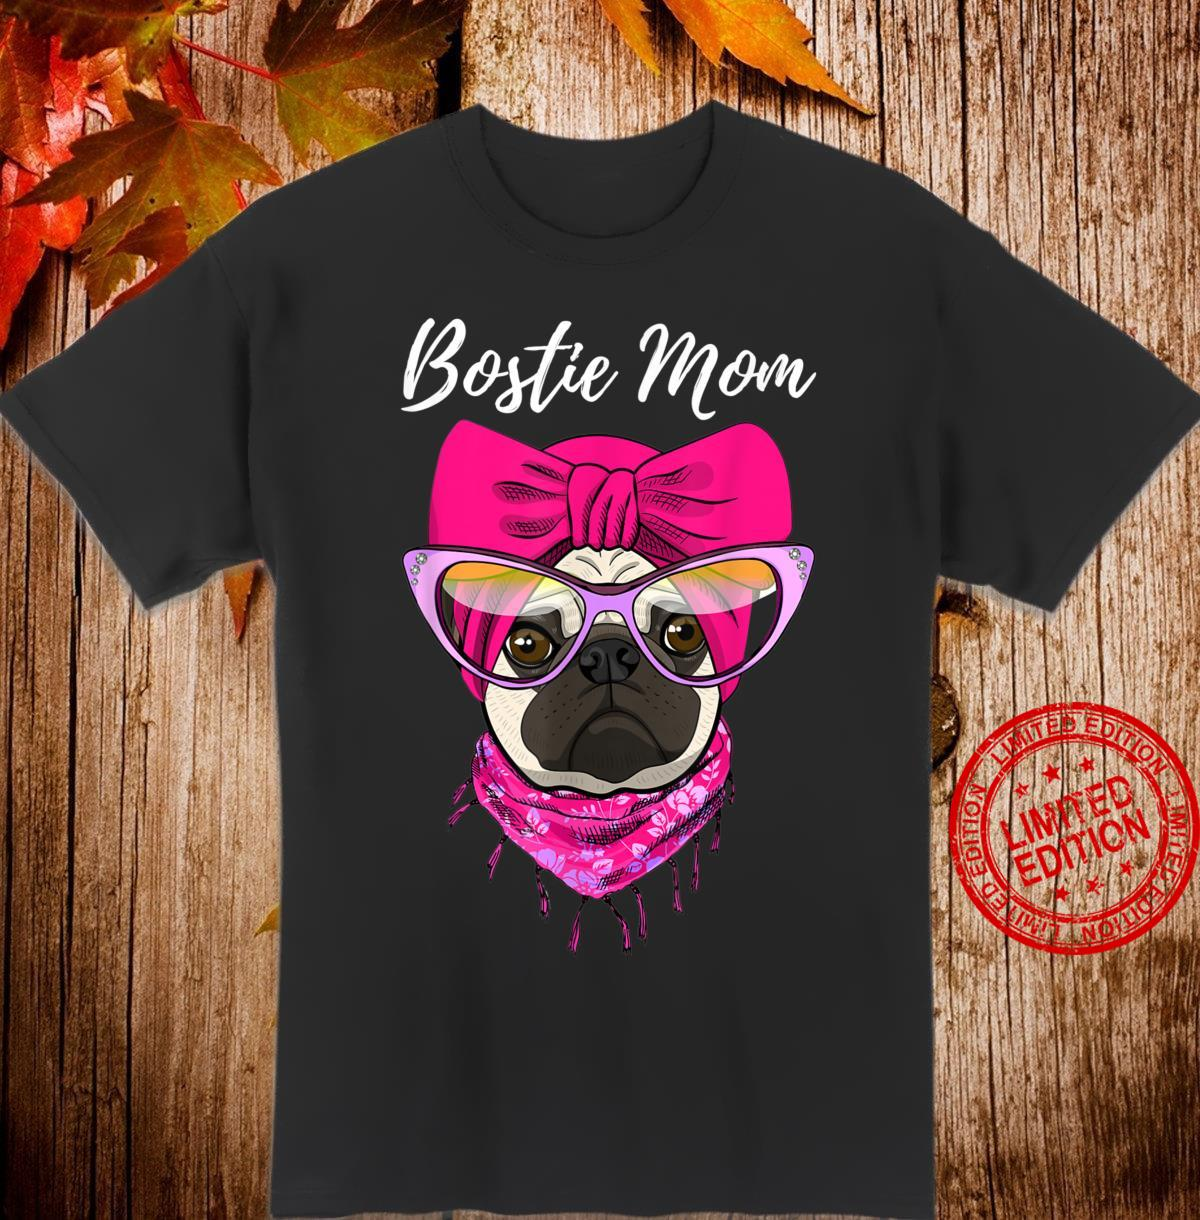 Boston Terrier Mom Shirt